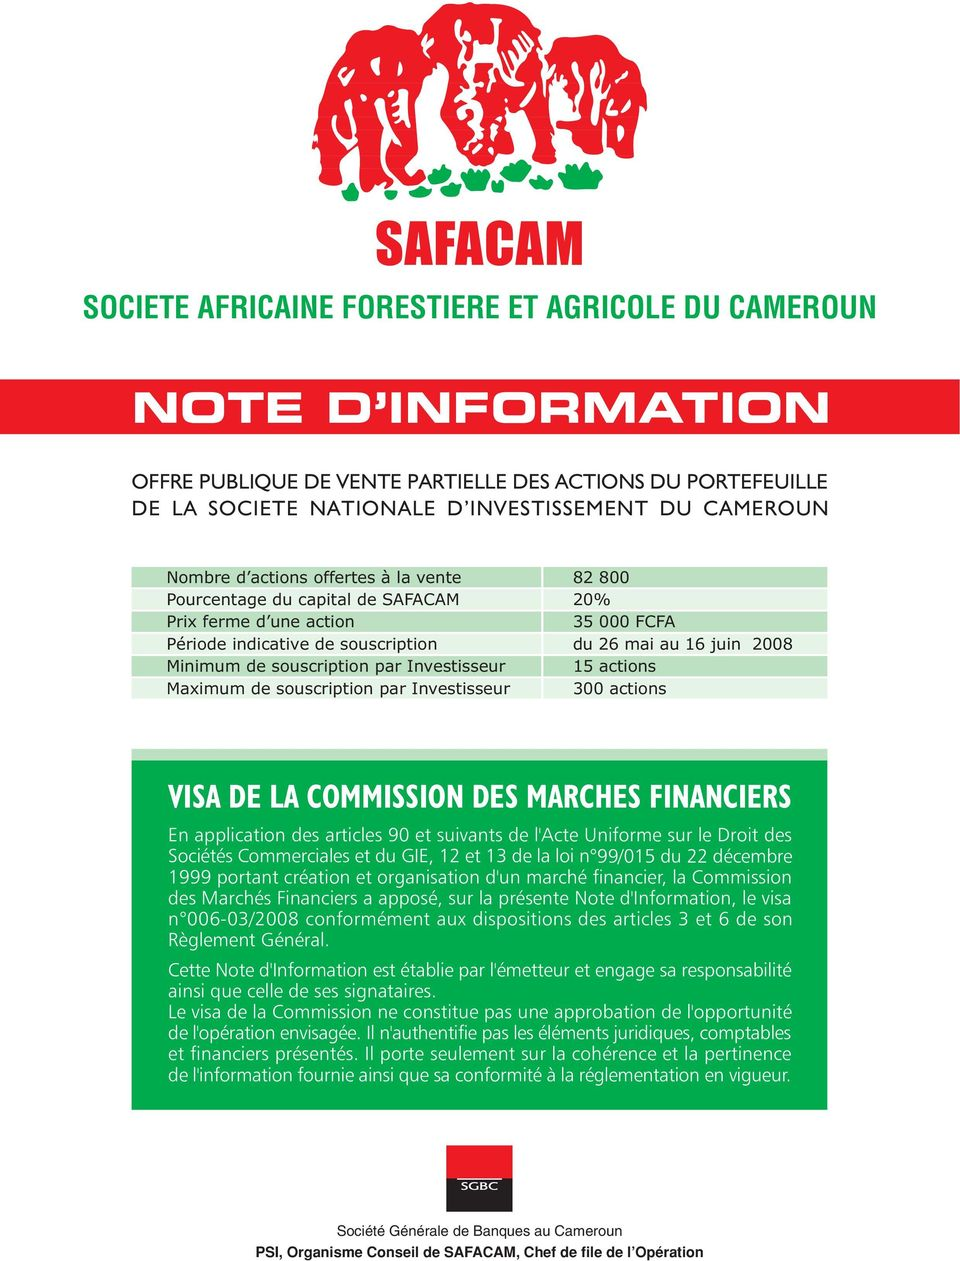 Investisseur 15 actions Maximum de souscription par Investisseur 3 actions VISA DE LA COMMISSION DES MARCHES FINANCIERS En application des articles 9 et suivants de l'acte Uniforme sur le Droit des